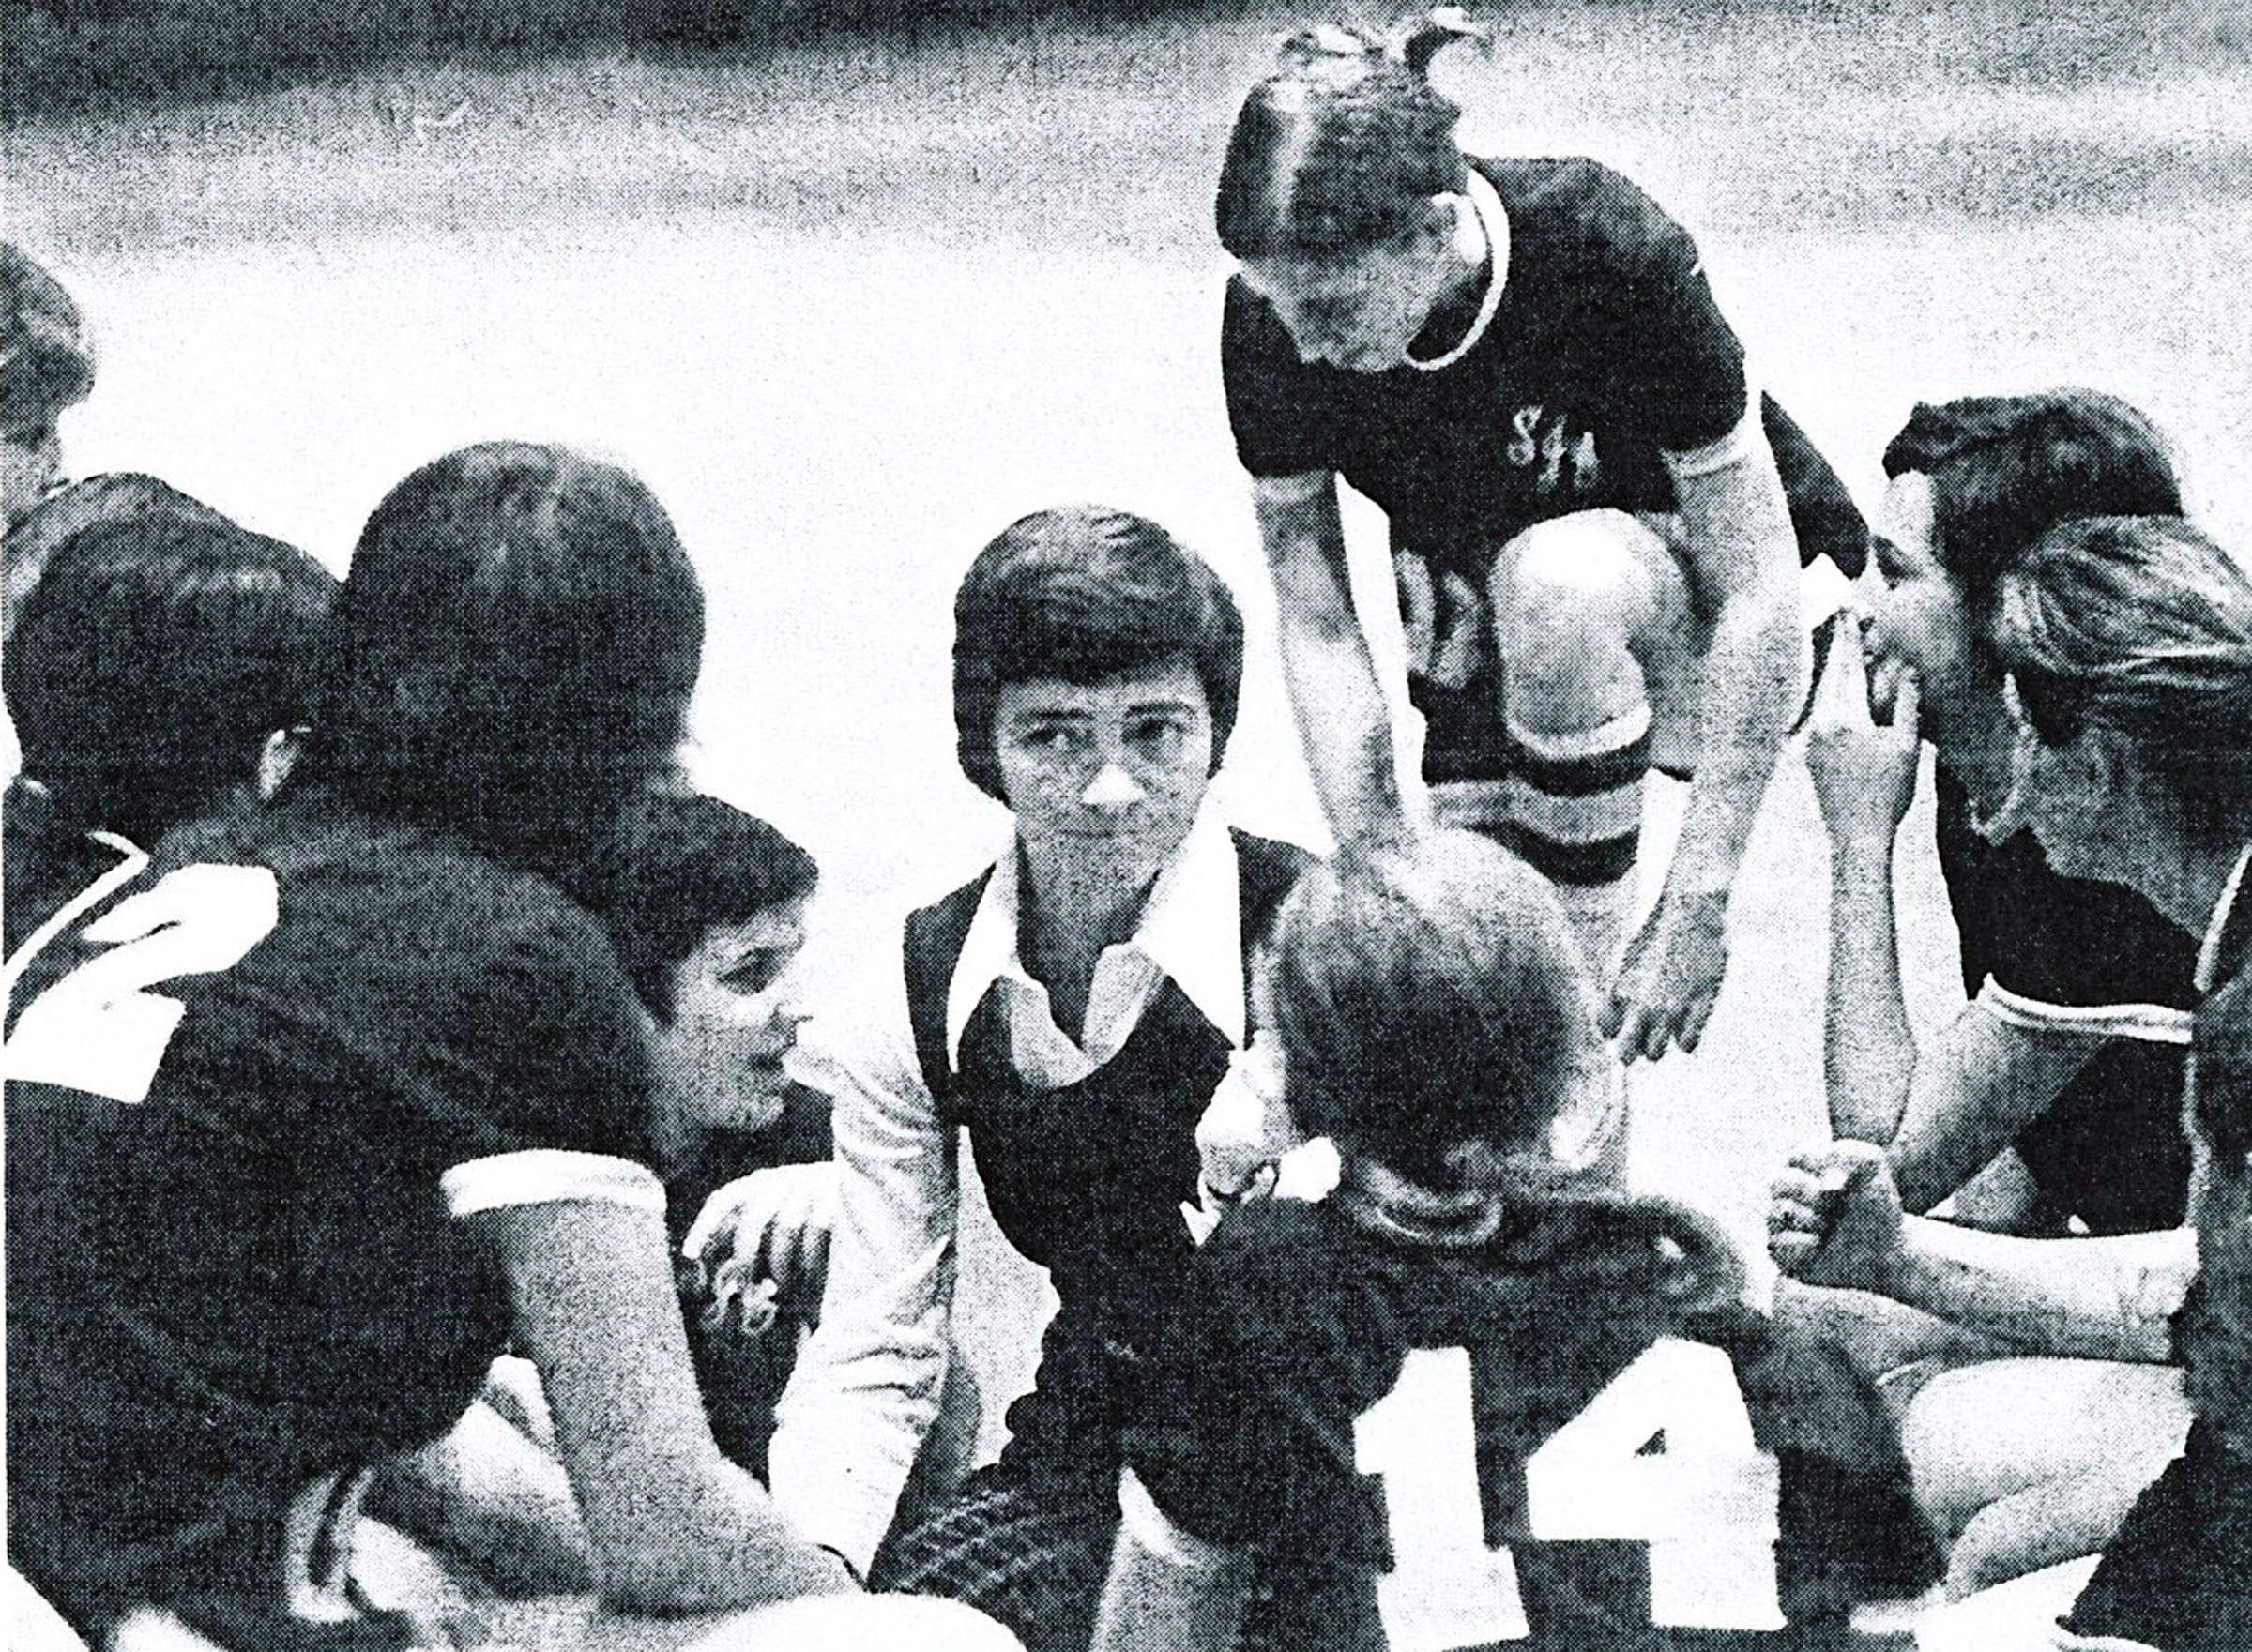 Ellen Ryan seen in 1973-74 as head coach of the first St. Joseph intercollegiate basketball team for women. She guided the Hawks to a 9-2 record. Ms. Ryan is at center.